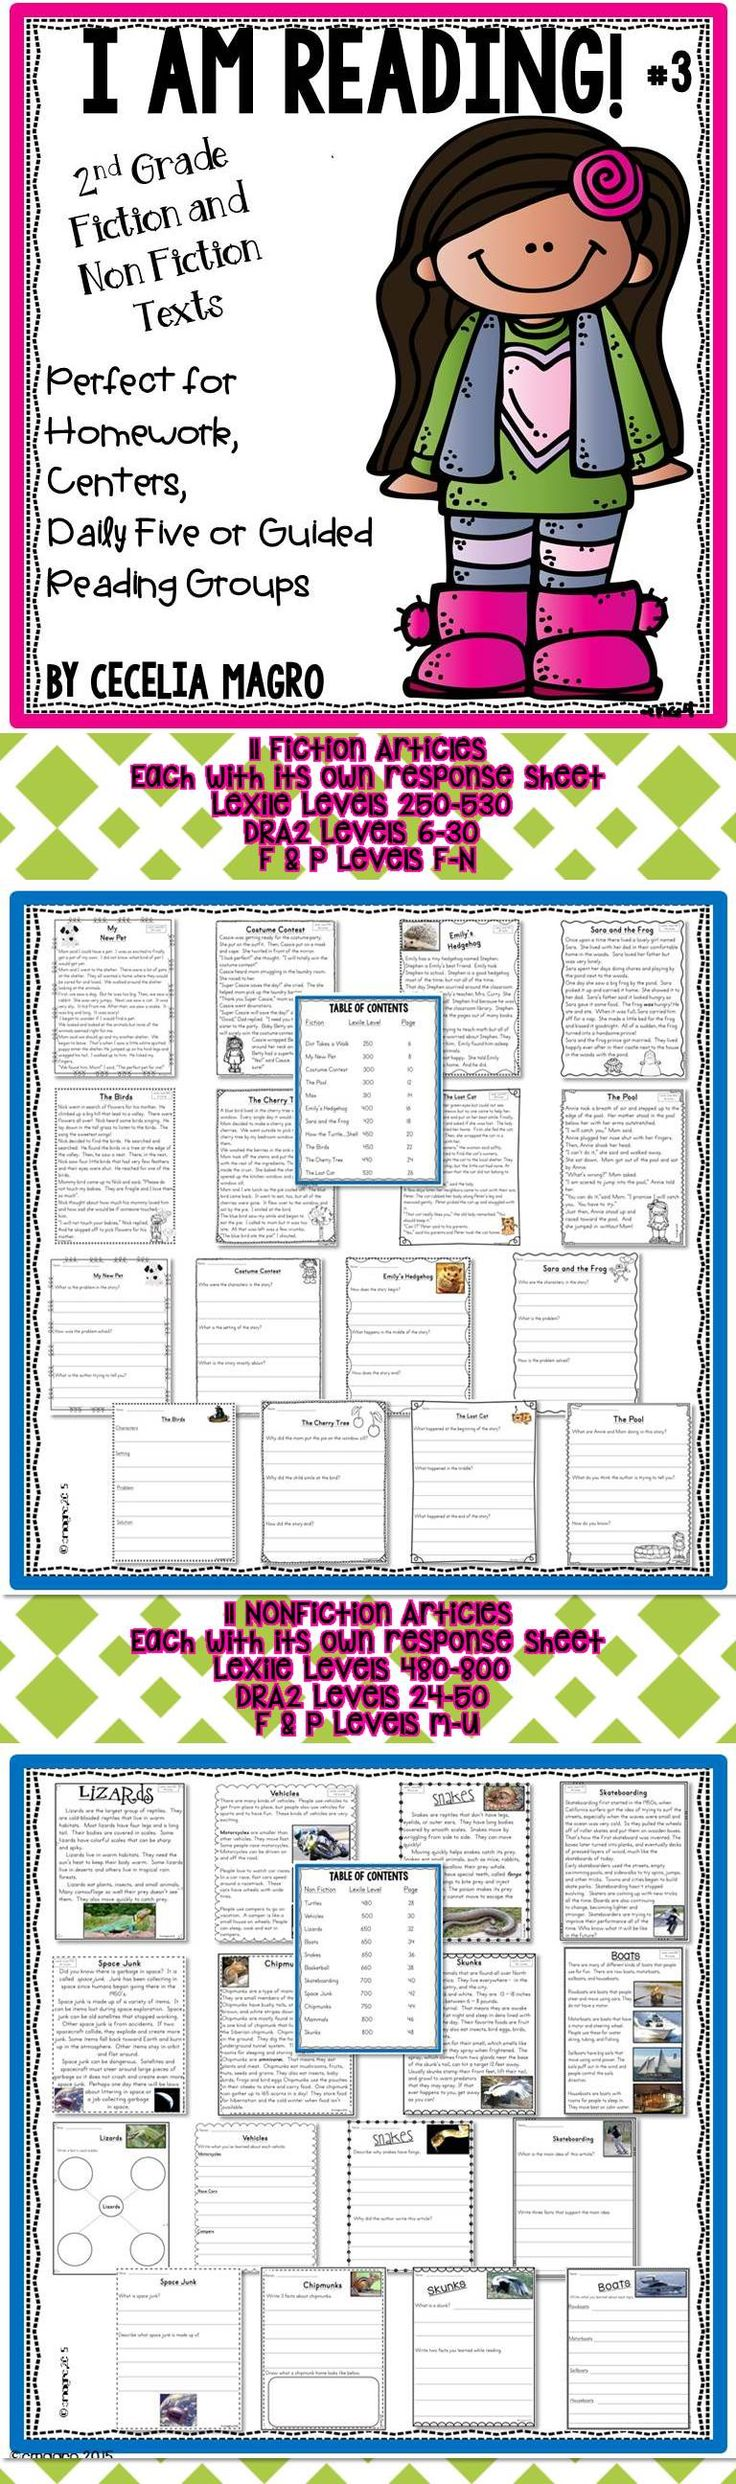 best leveled reading passages ideas guided 22 original second grade leveled reading passages and close reading activities perfectly aligned to common core